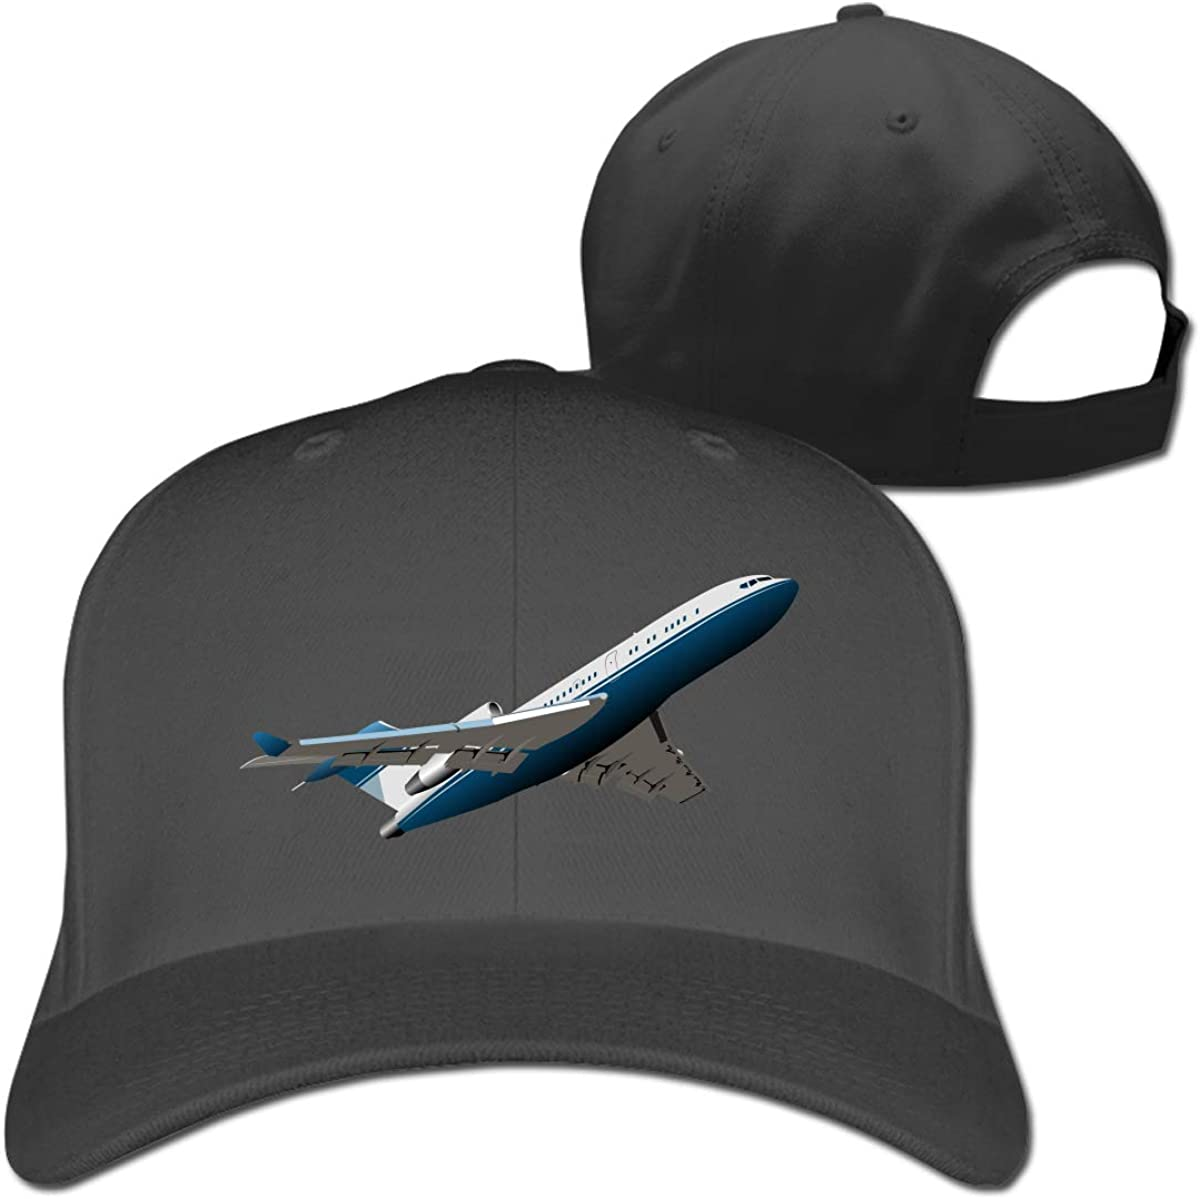 Airplane Fashion Adjustable Cotton Baseball Caps Trucker Driver Hat Outdoor Cap Black